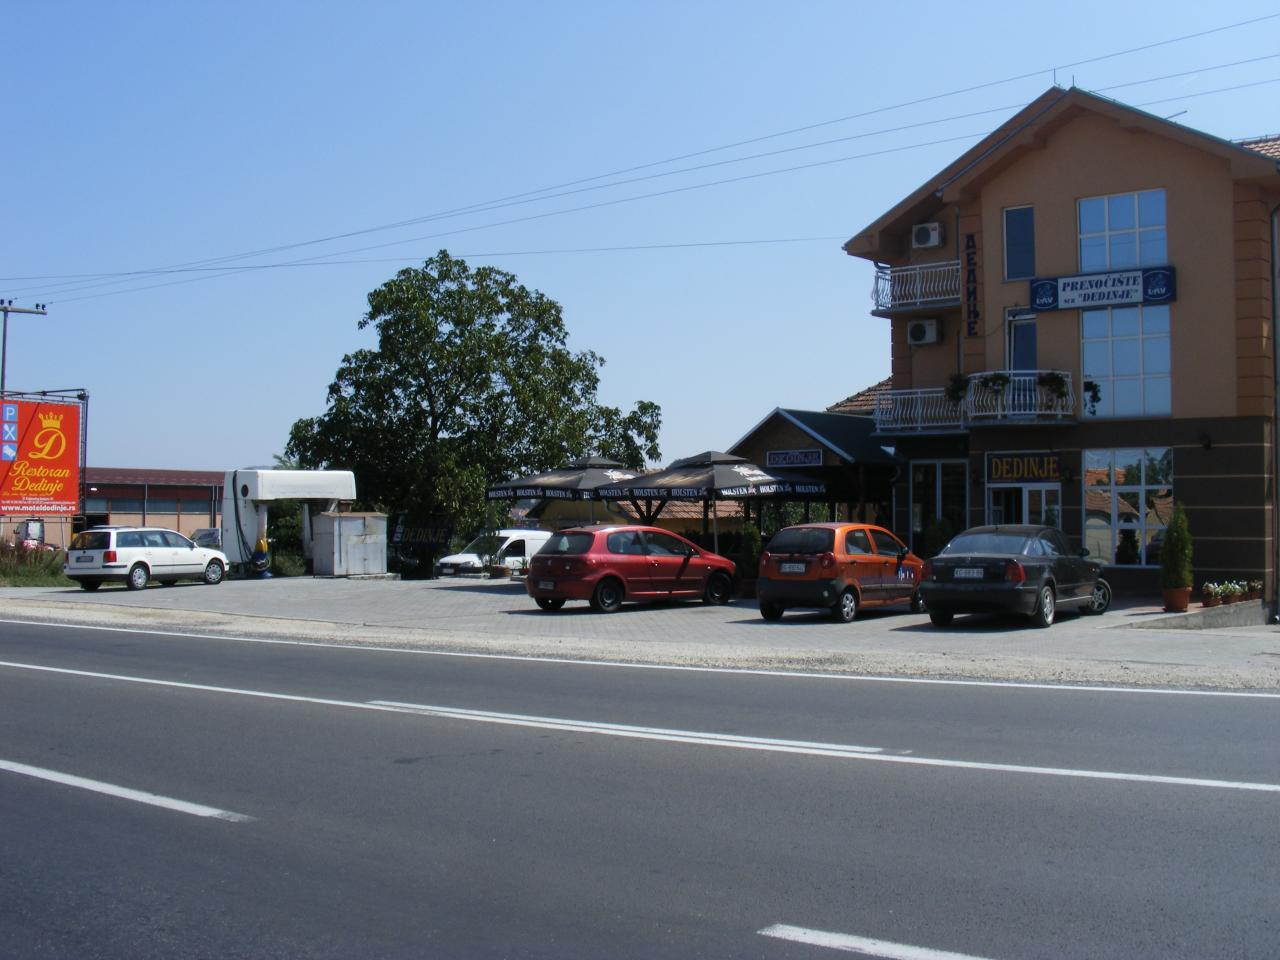 RESTAURANT DEDINJE Motels Kragujevac - Photo 1